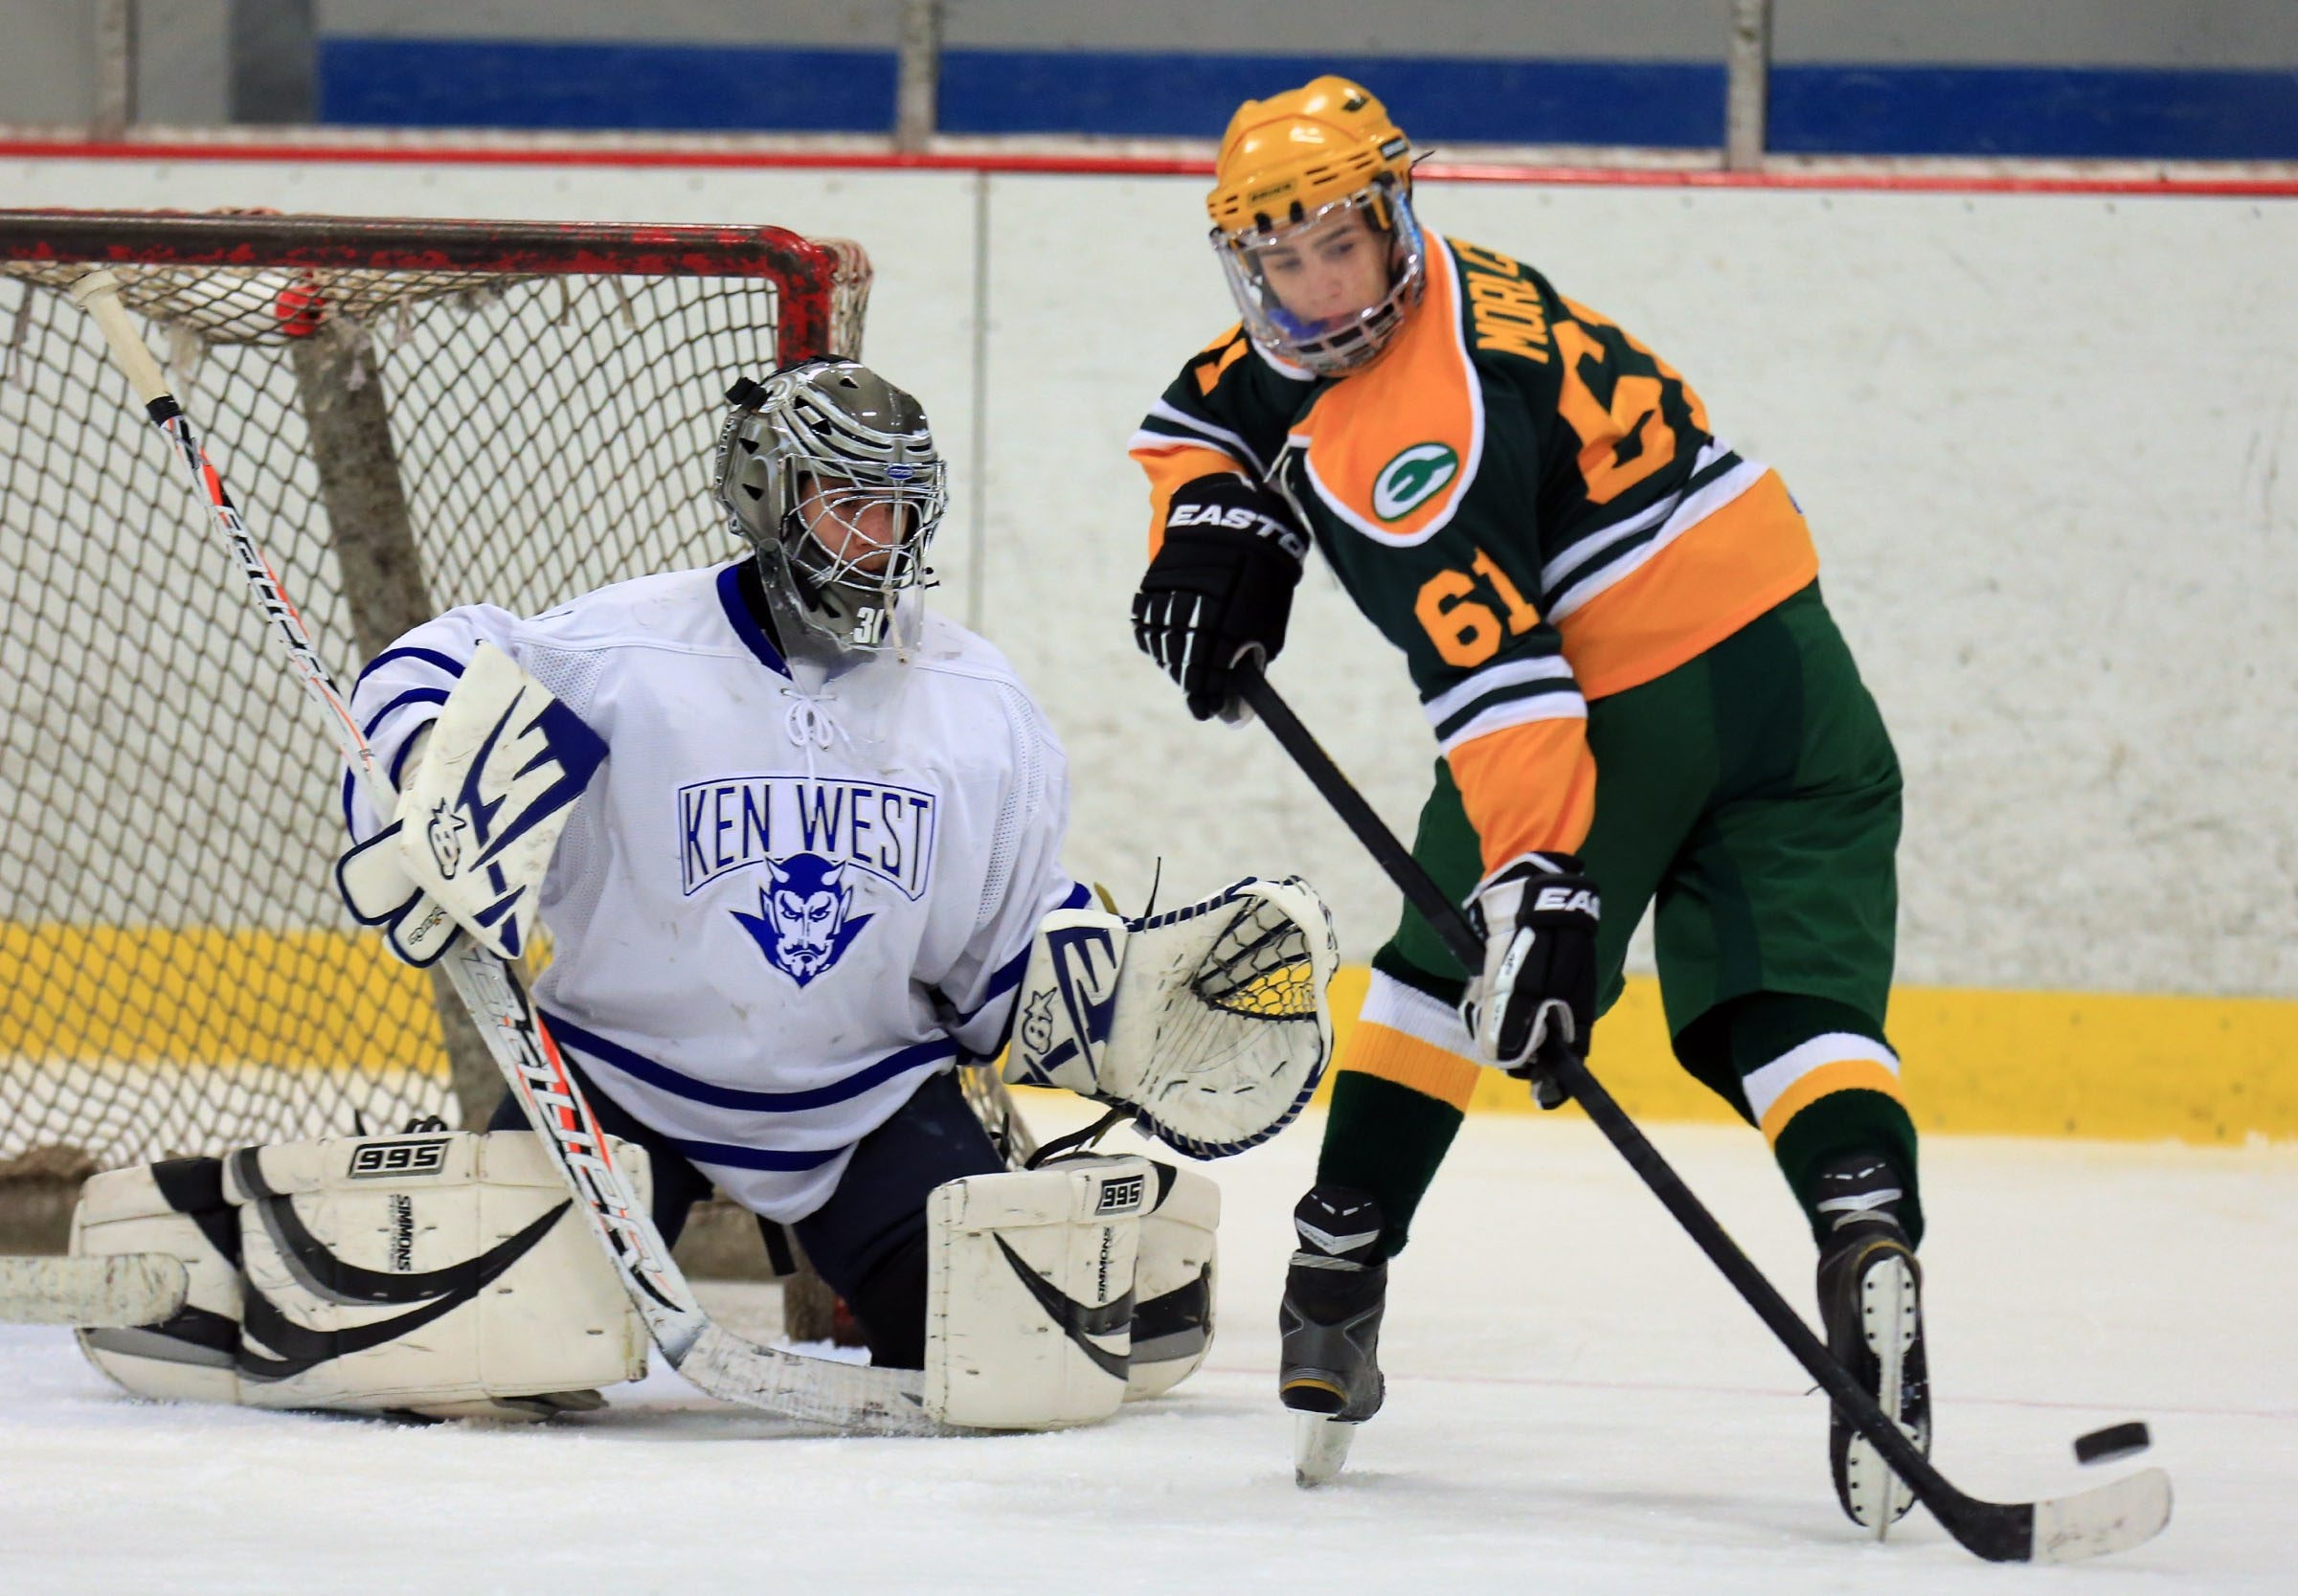 West Seneca East's Alex Morlock (61) finished with a goal and three assists as goalie Joseph Carney and his Kenmore West teammates dropped a 7-1 decision at the Hyde Park Ice Pavilion in Niagara Falls.